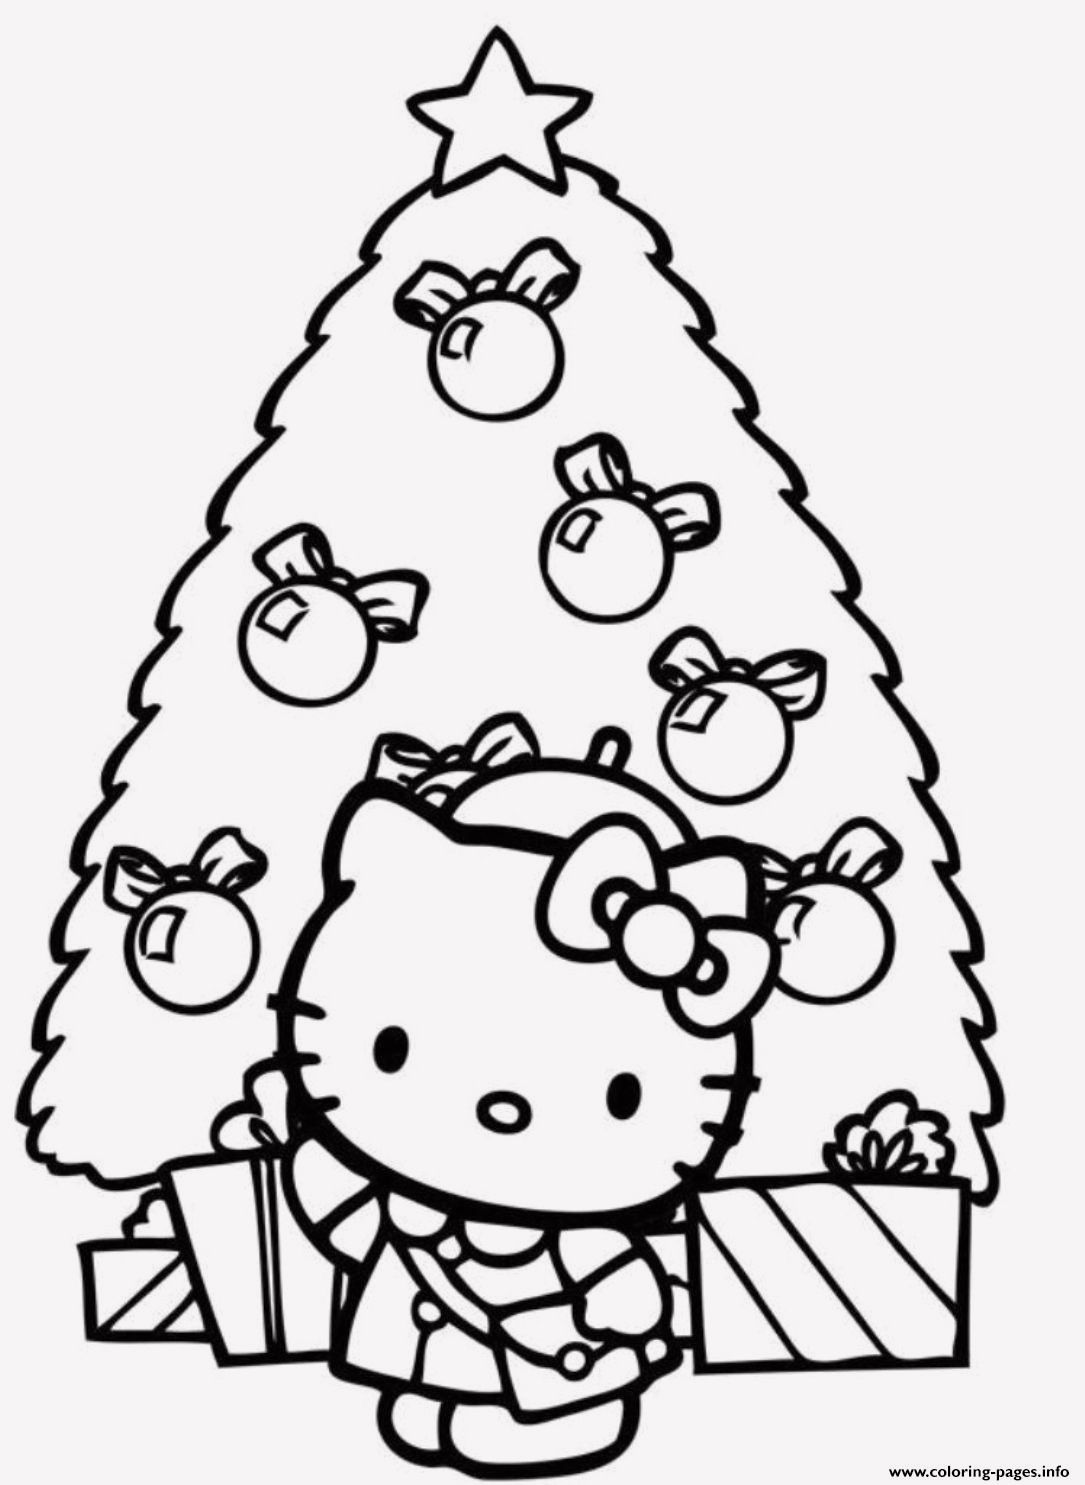 15 Hello Kitty Images Coloring Pages Hello Kitty Colouring Pages Hello Kitty Coloring Kitty Coloring